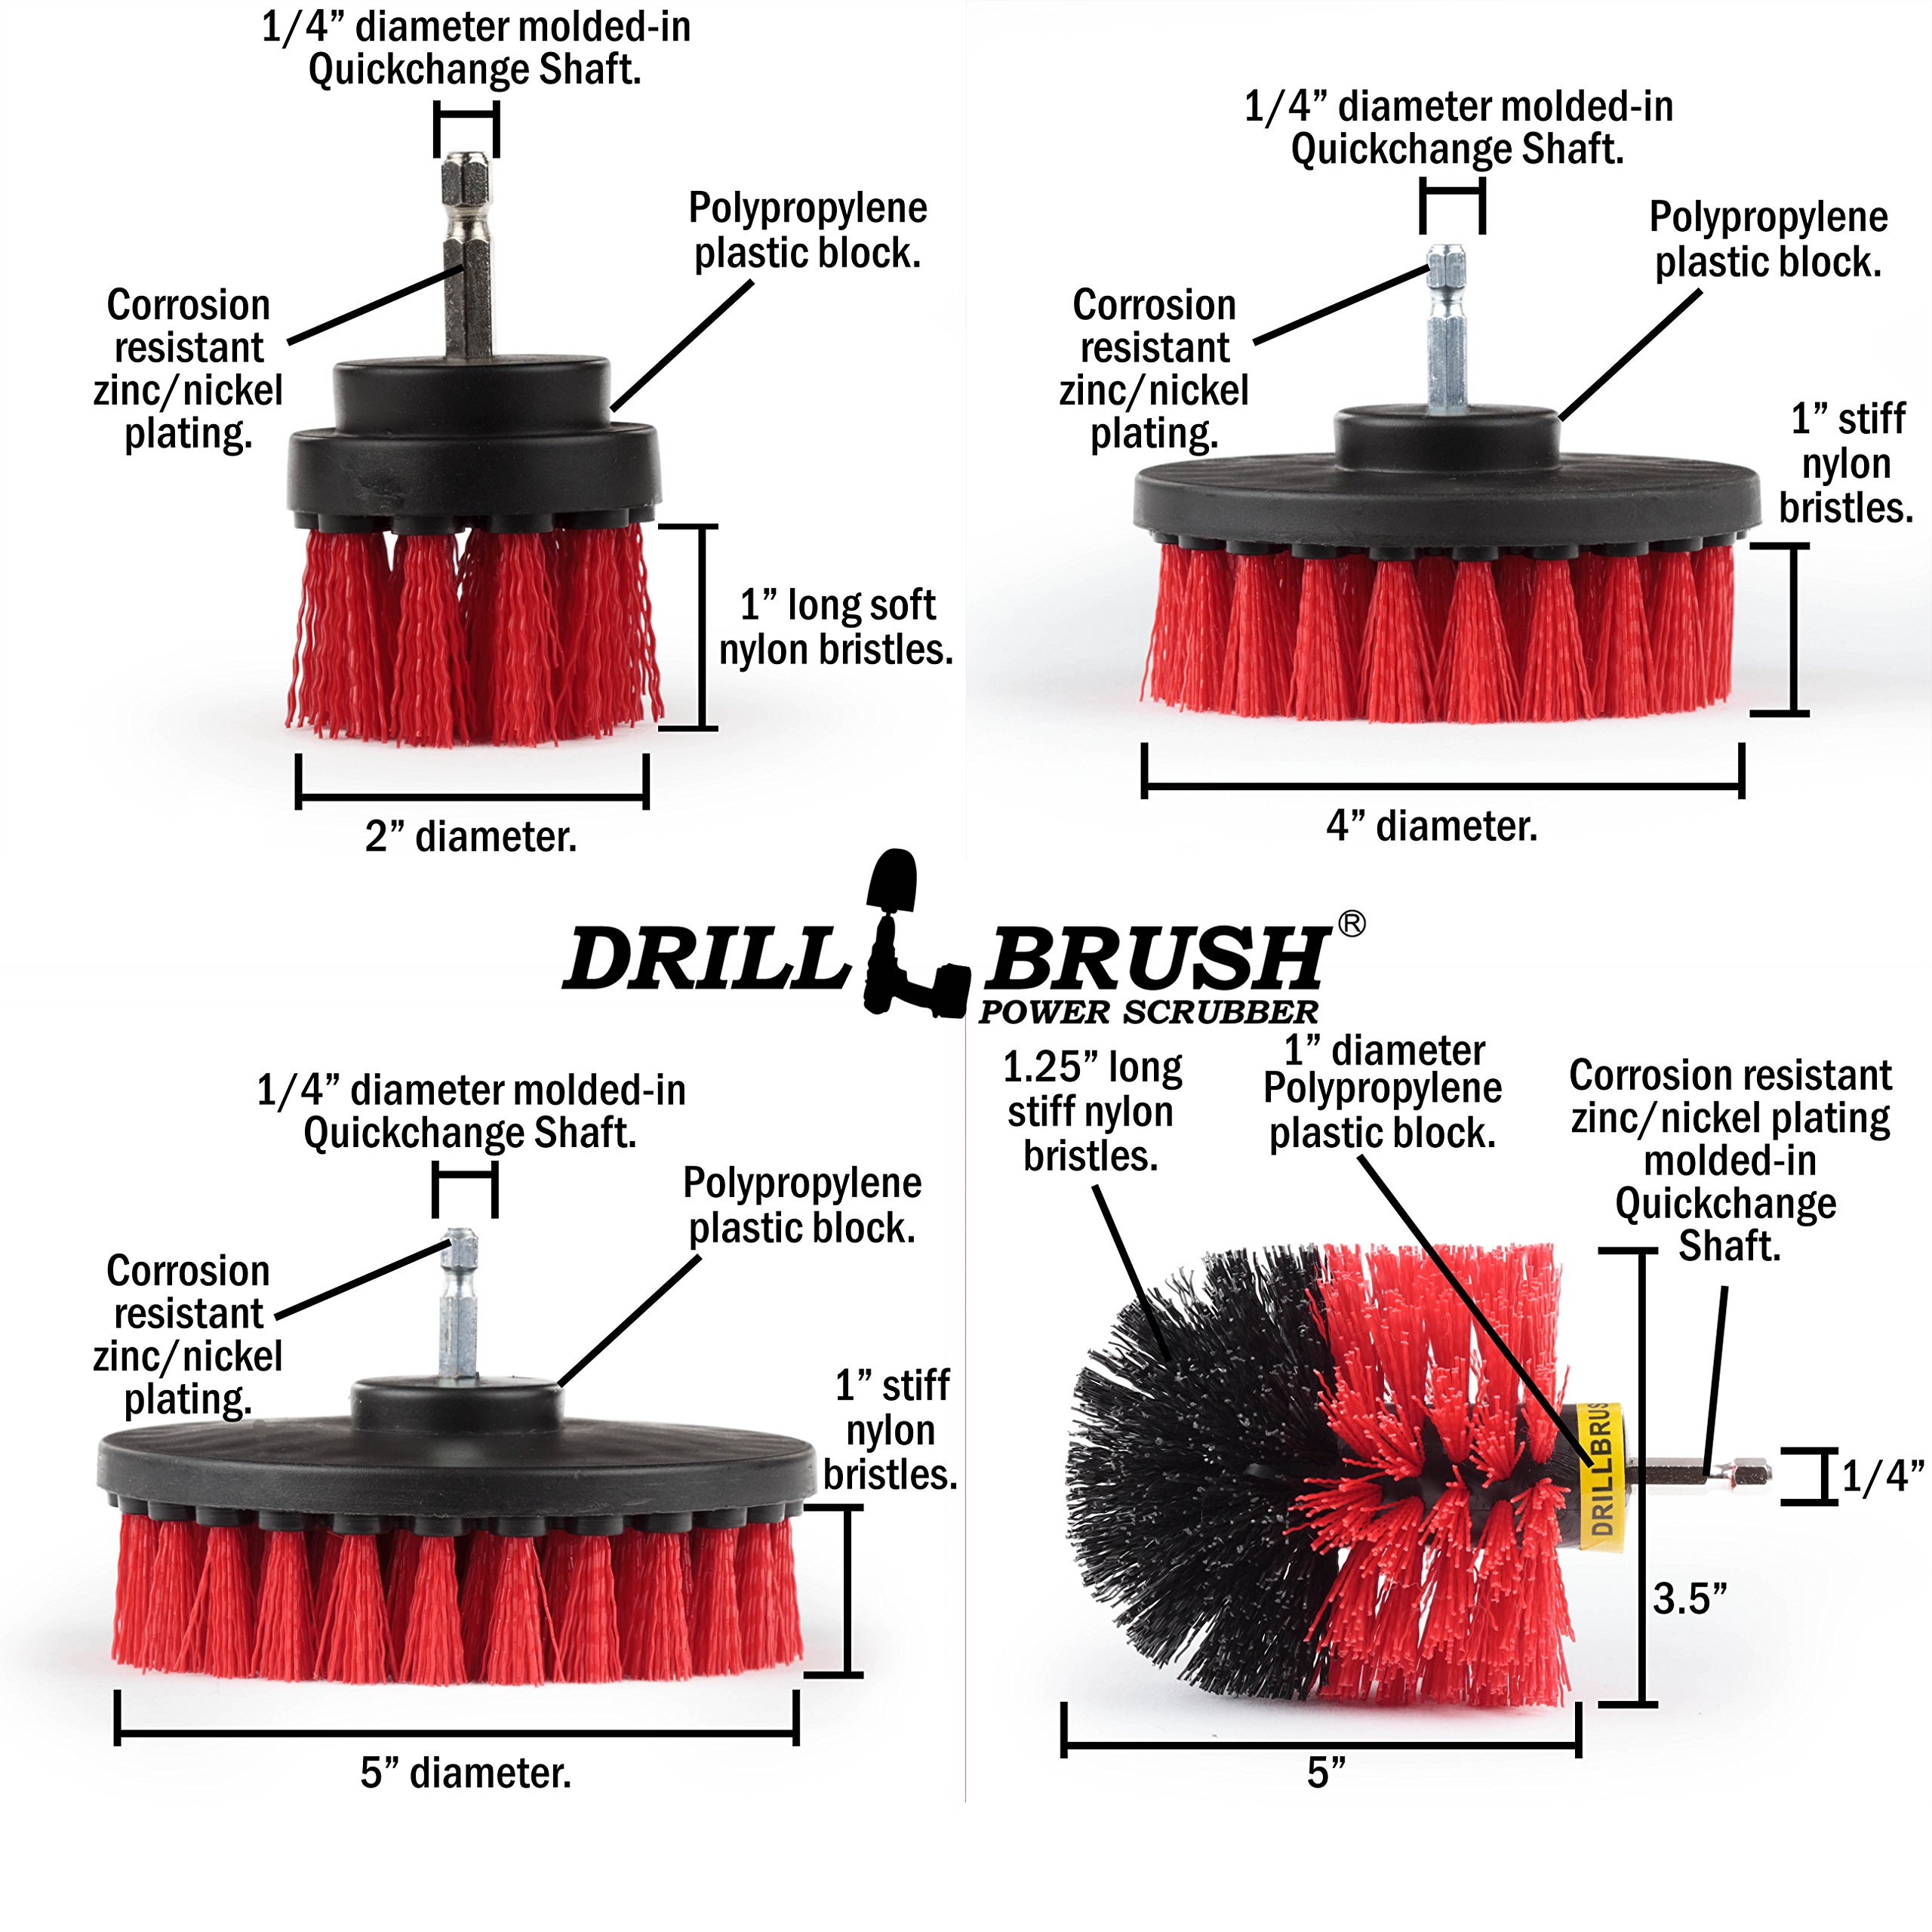 Stiff Bristle 4 Piece Drill Brush Nylon Cordless Drill Powered Spinning Brush Heavy Duty Scrubbing by Drillbrush by Drillbrush (Image #5)